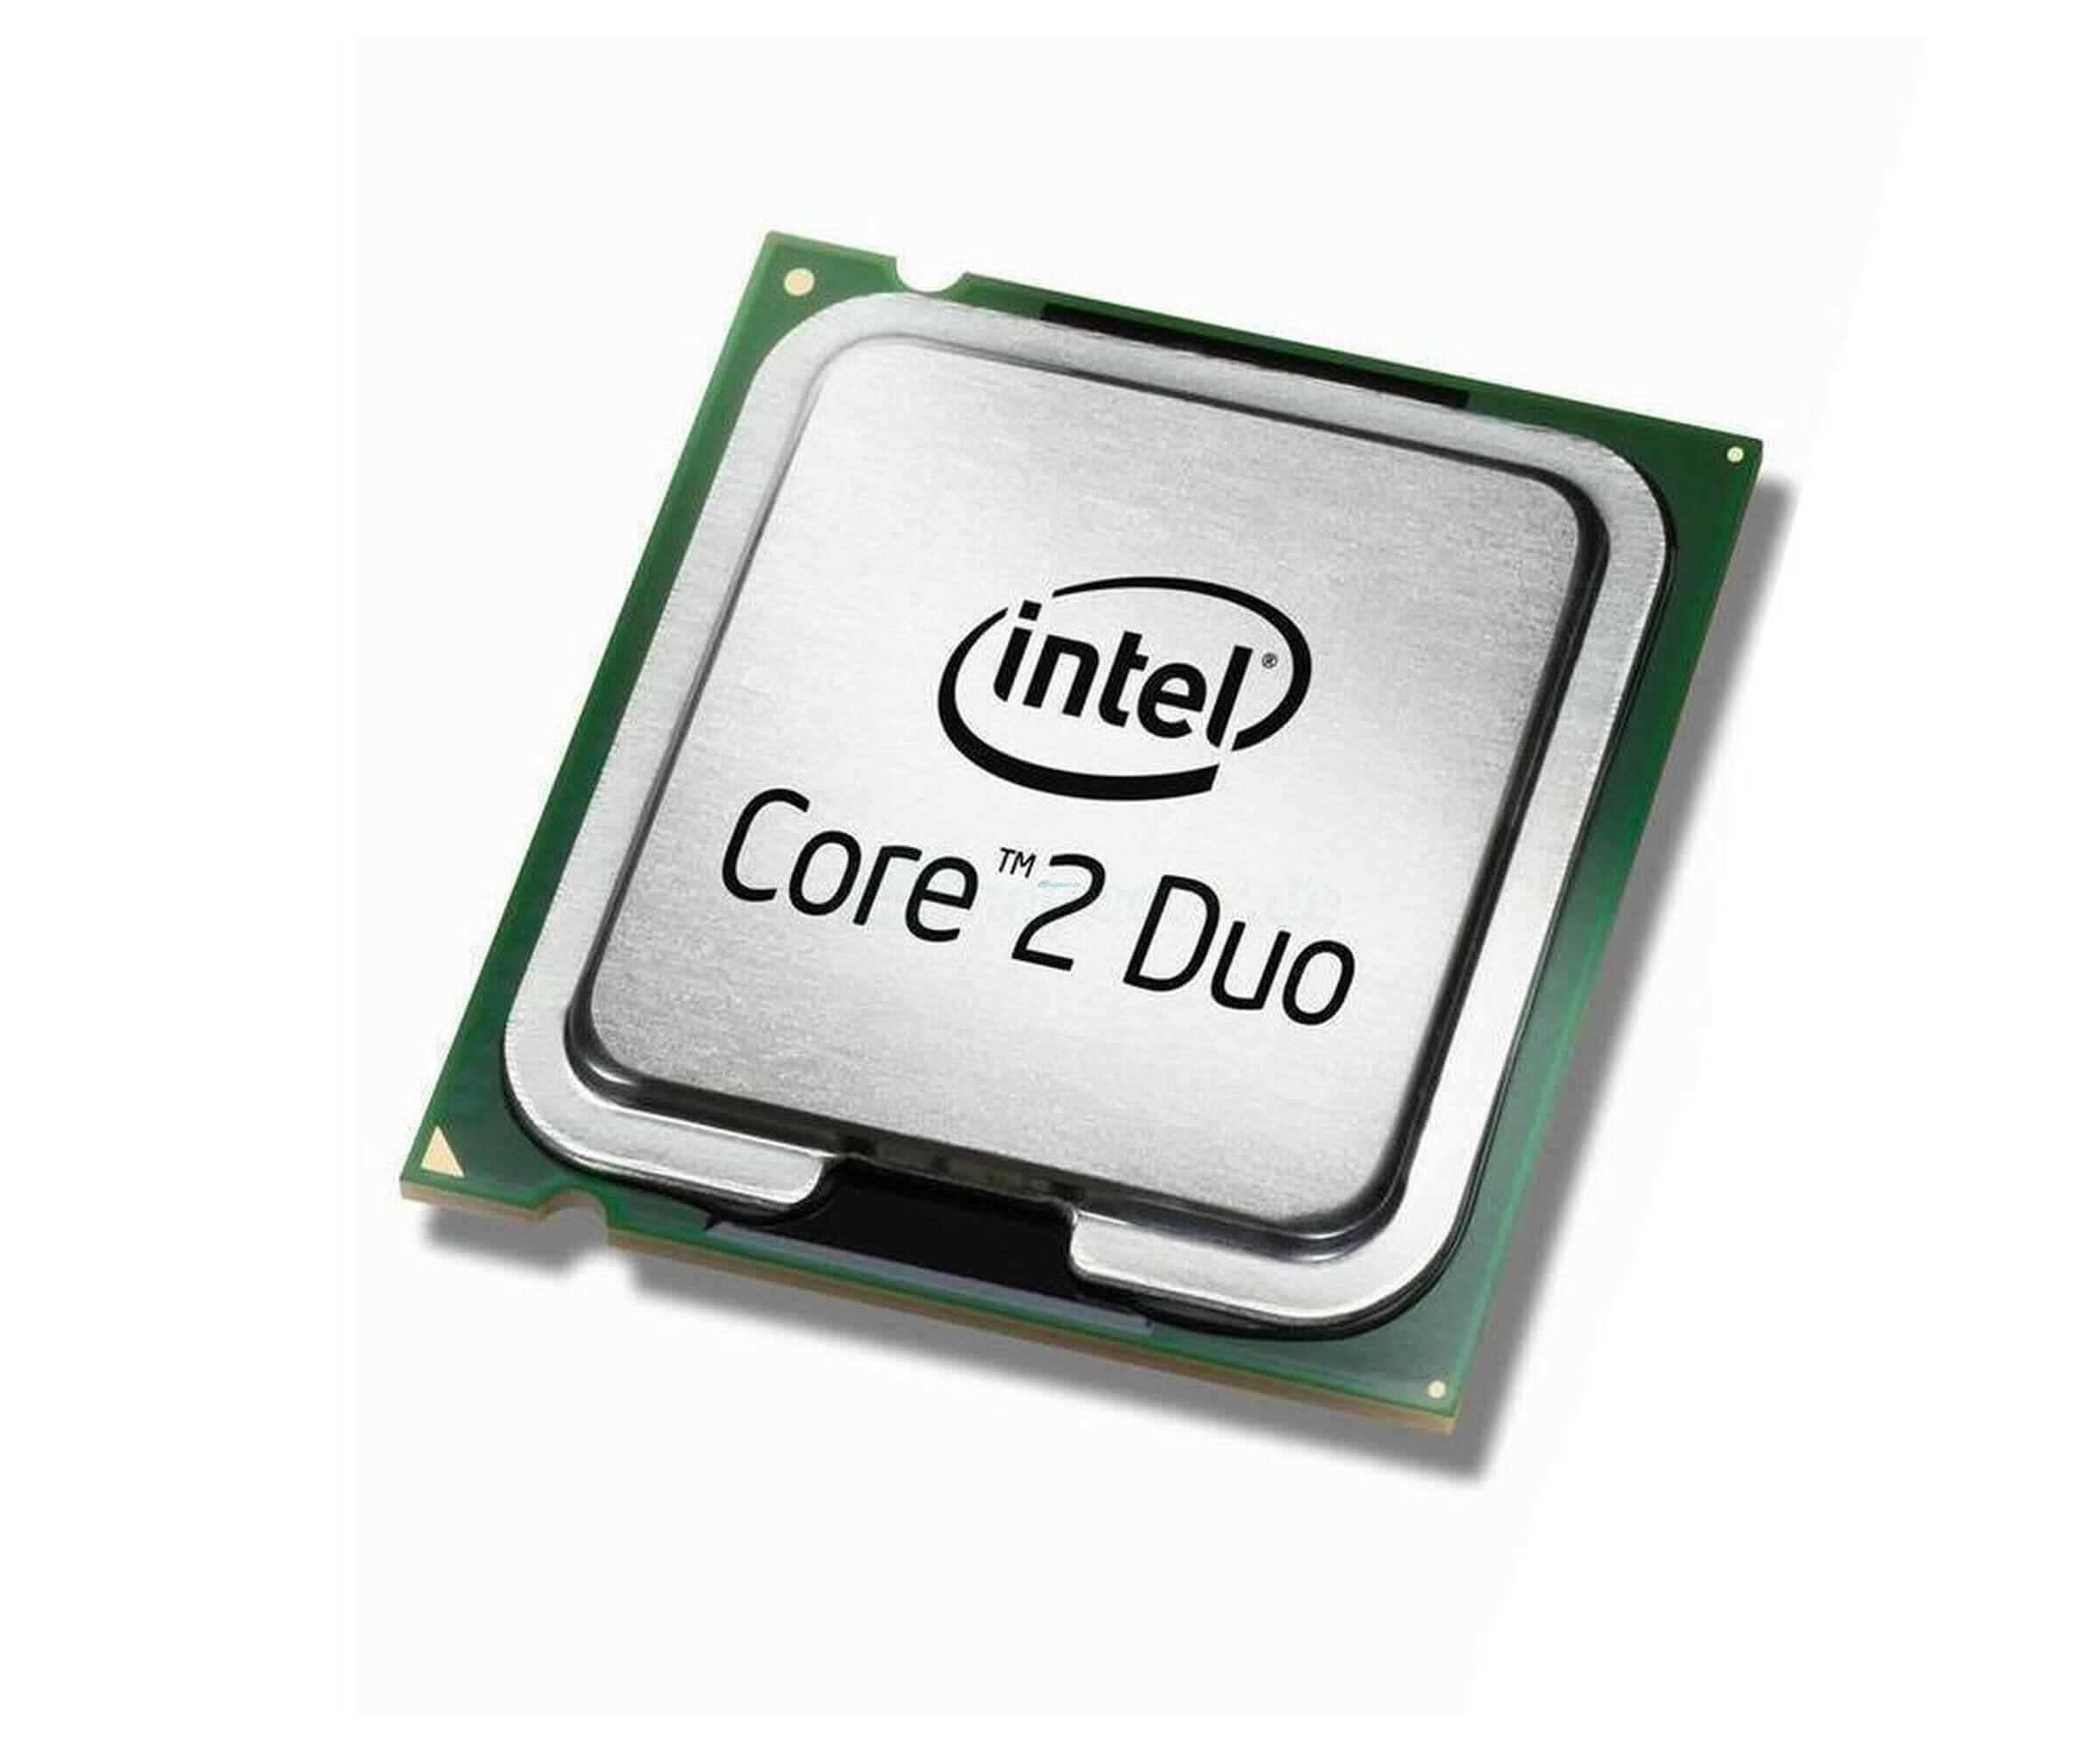 Intel Core 2 Duo T9550 - 2,66 GHz (1066MHz FSB) - PGA478 - L2 6 MB